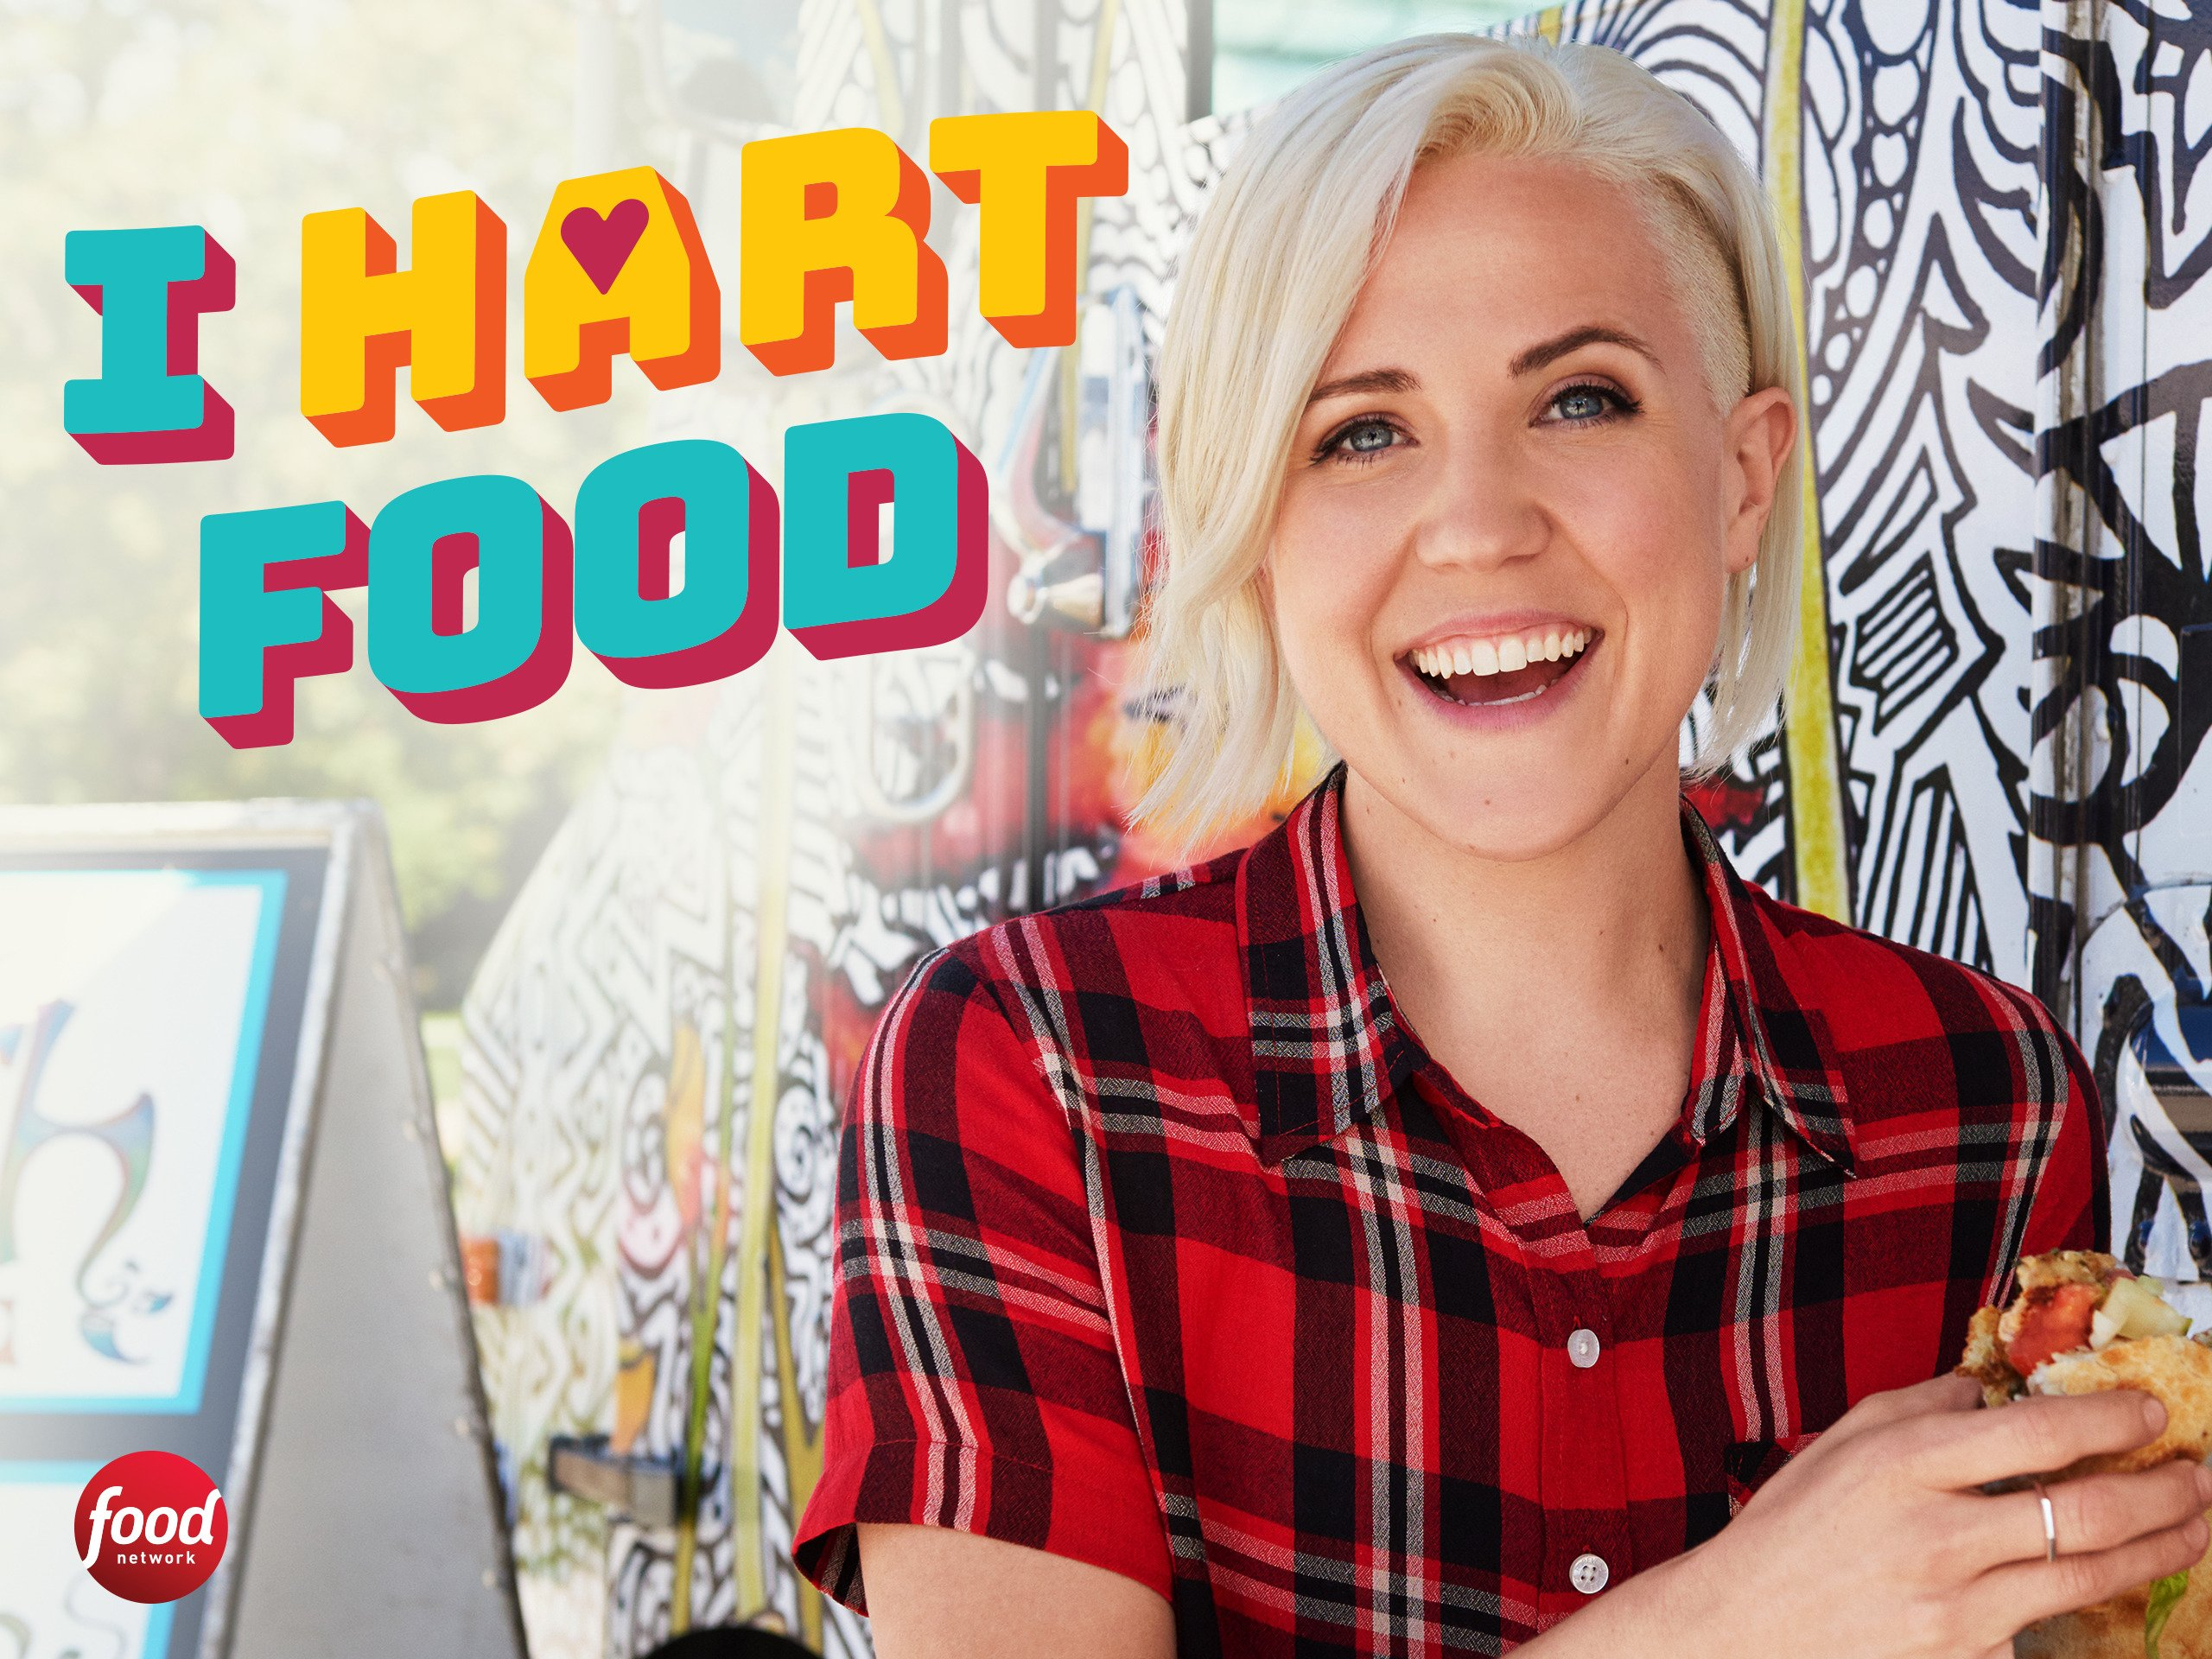 Amazoncom I Hart Food Season 1